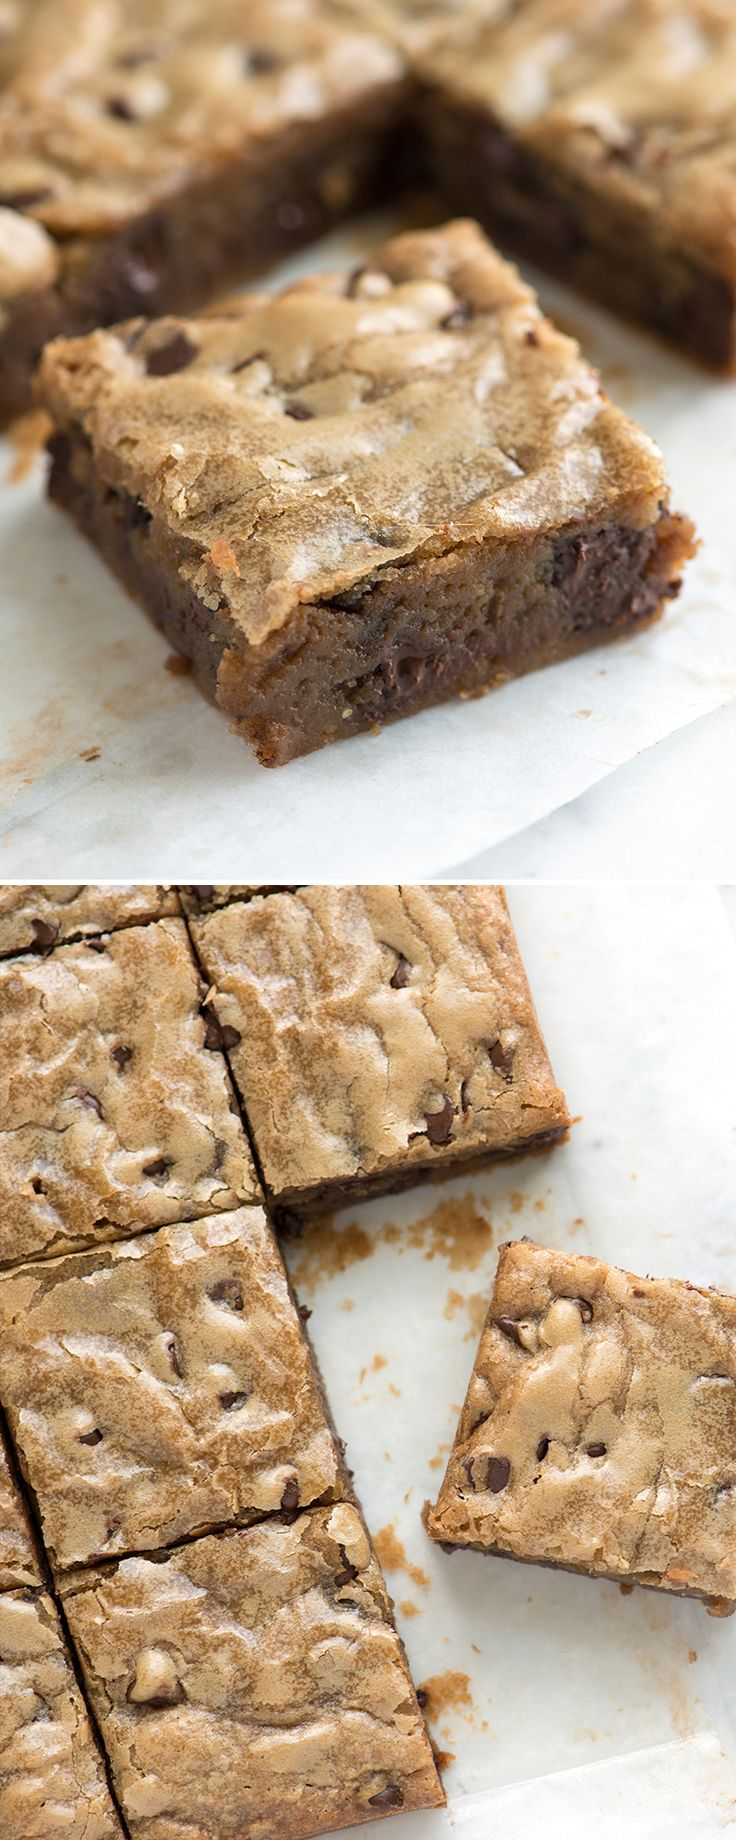 Blondies are one of the simplest, tastiest baked goods you can make. These blondies are perfectly dense with a paper-thin crinkly top and taste like deep, rich buttery caramel. From inspiredtaste.net | @inspiredtaste